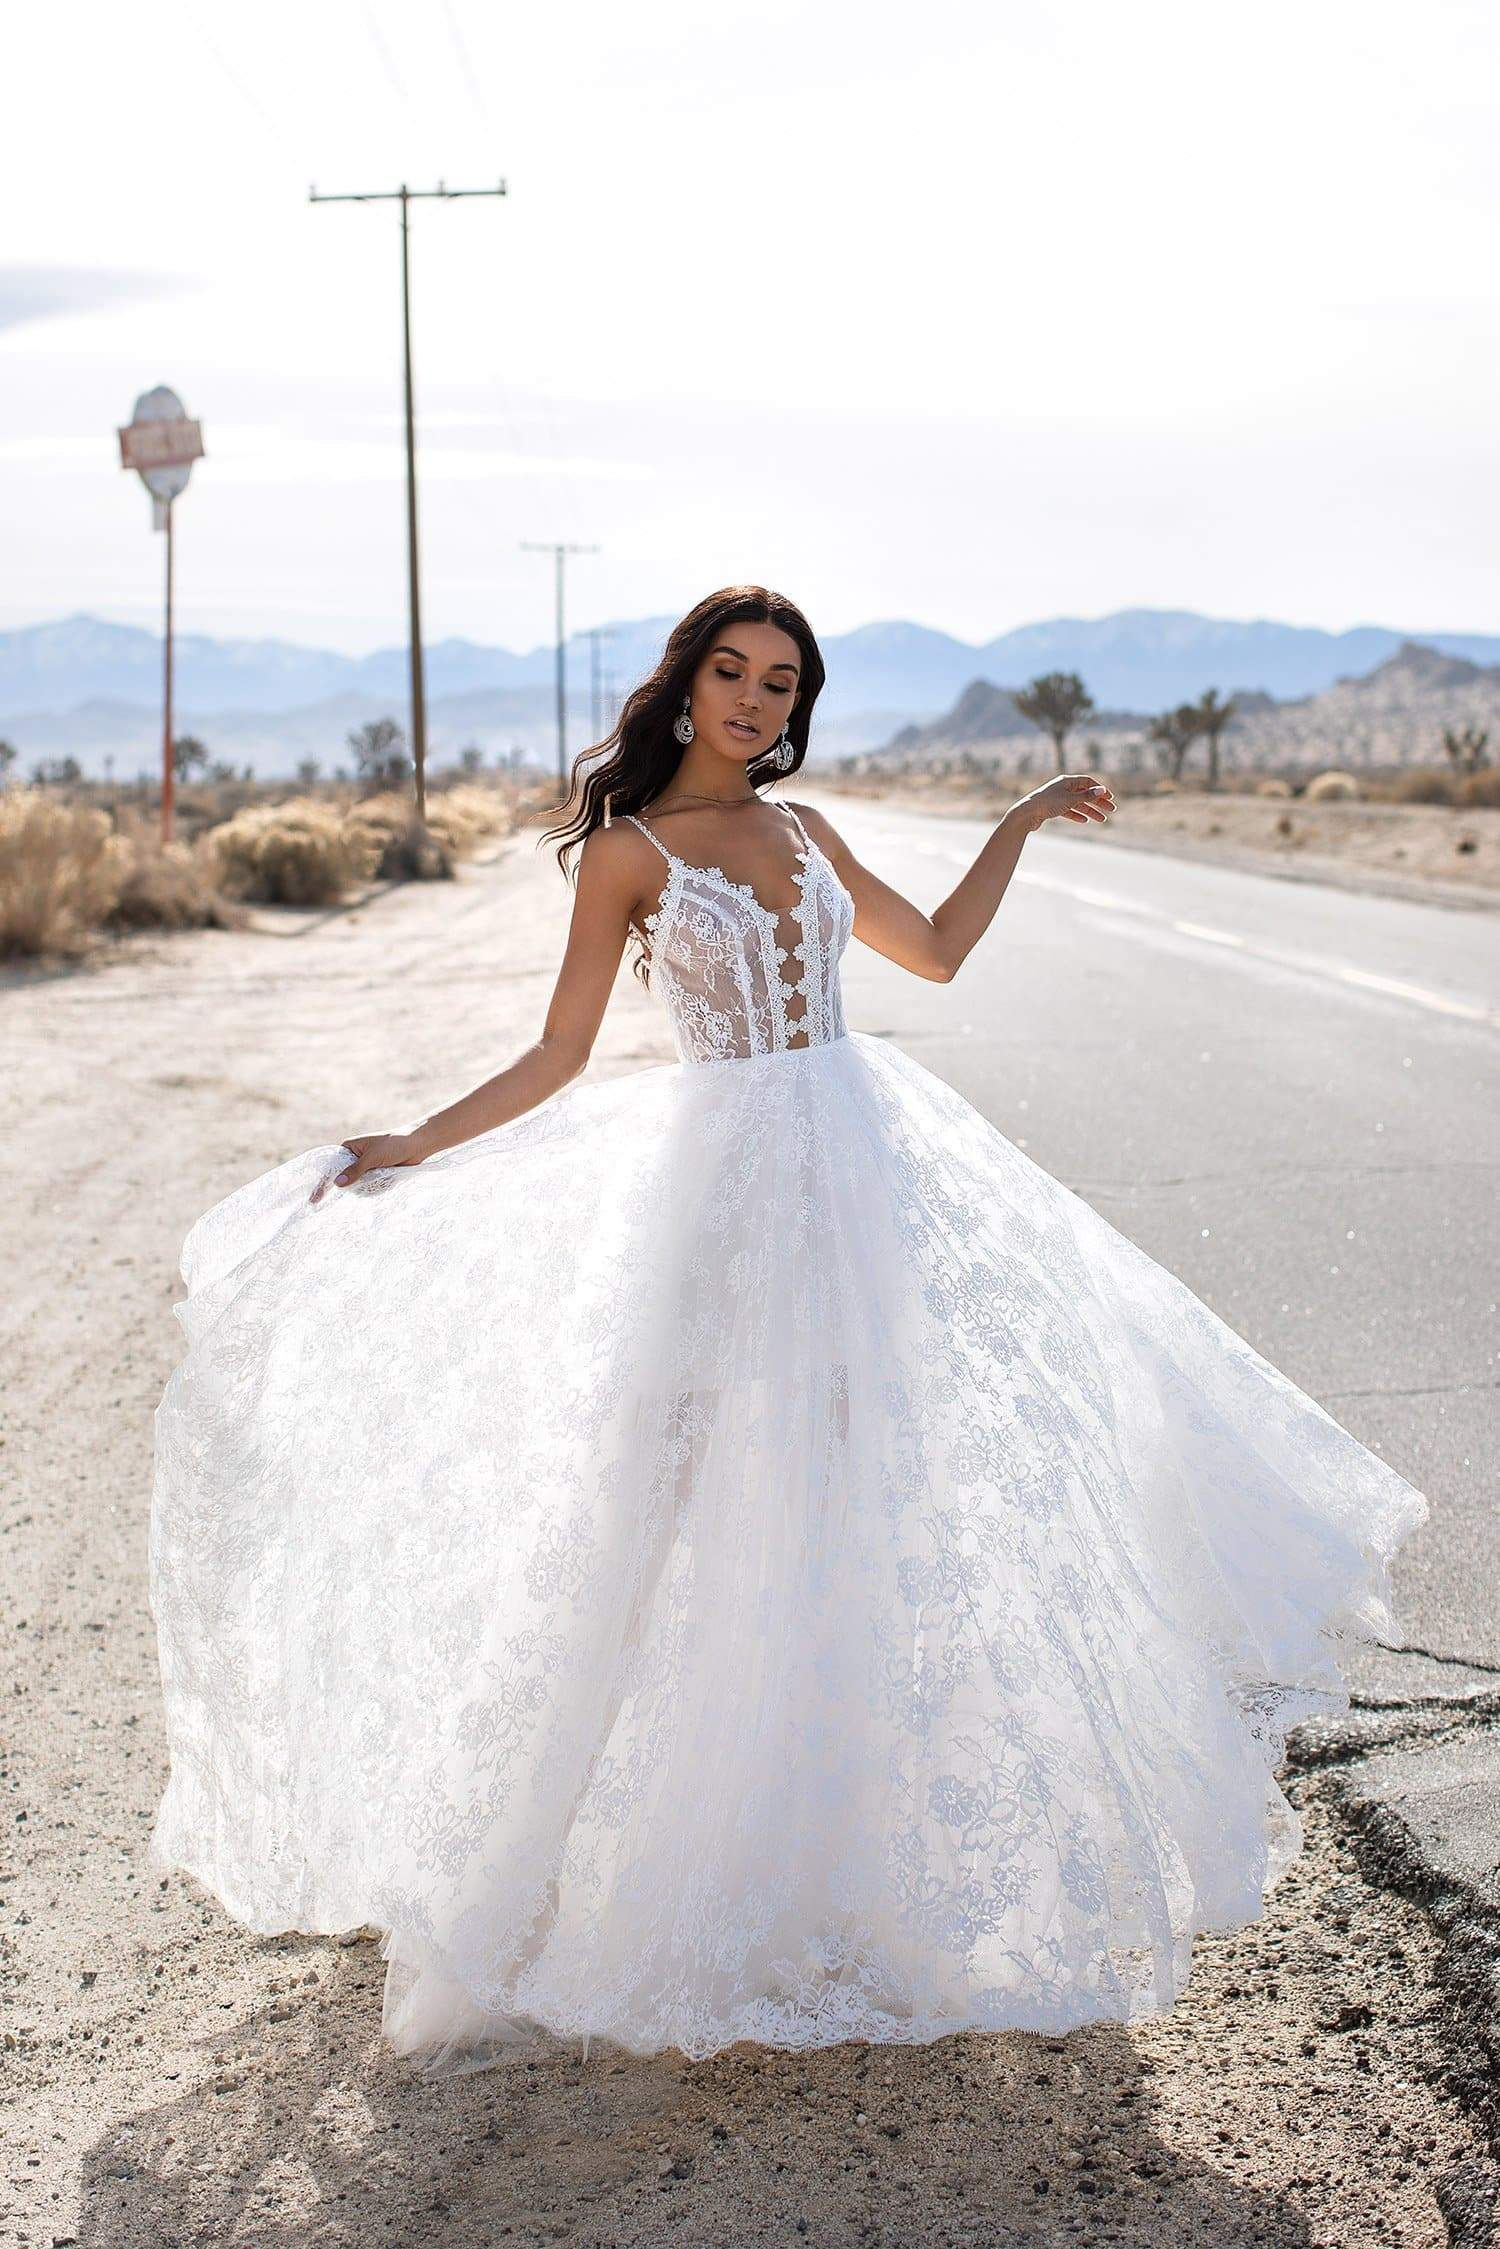 A&N Daina - White Lace & Tulle Sheer Boho Bridal Backless Gown